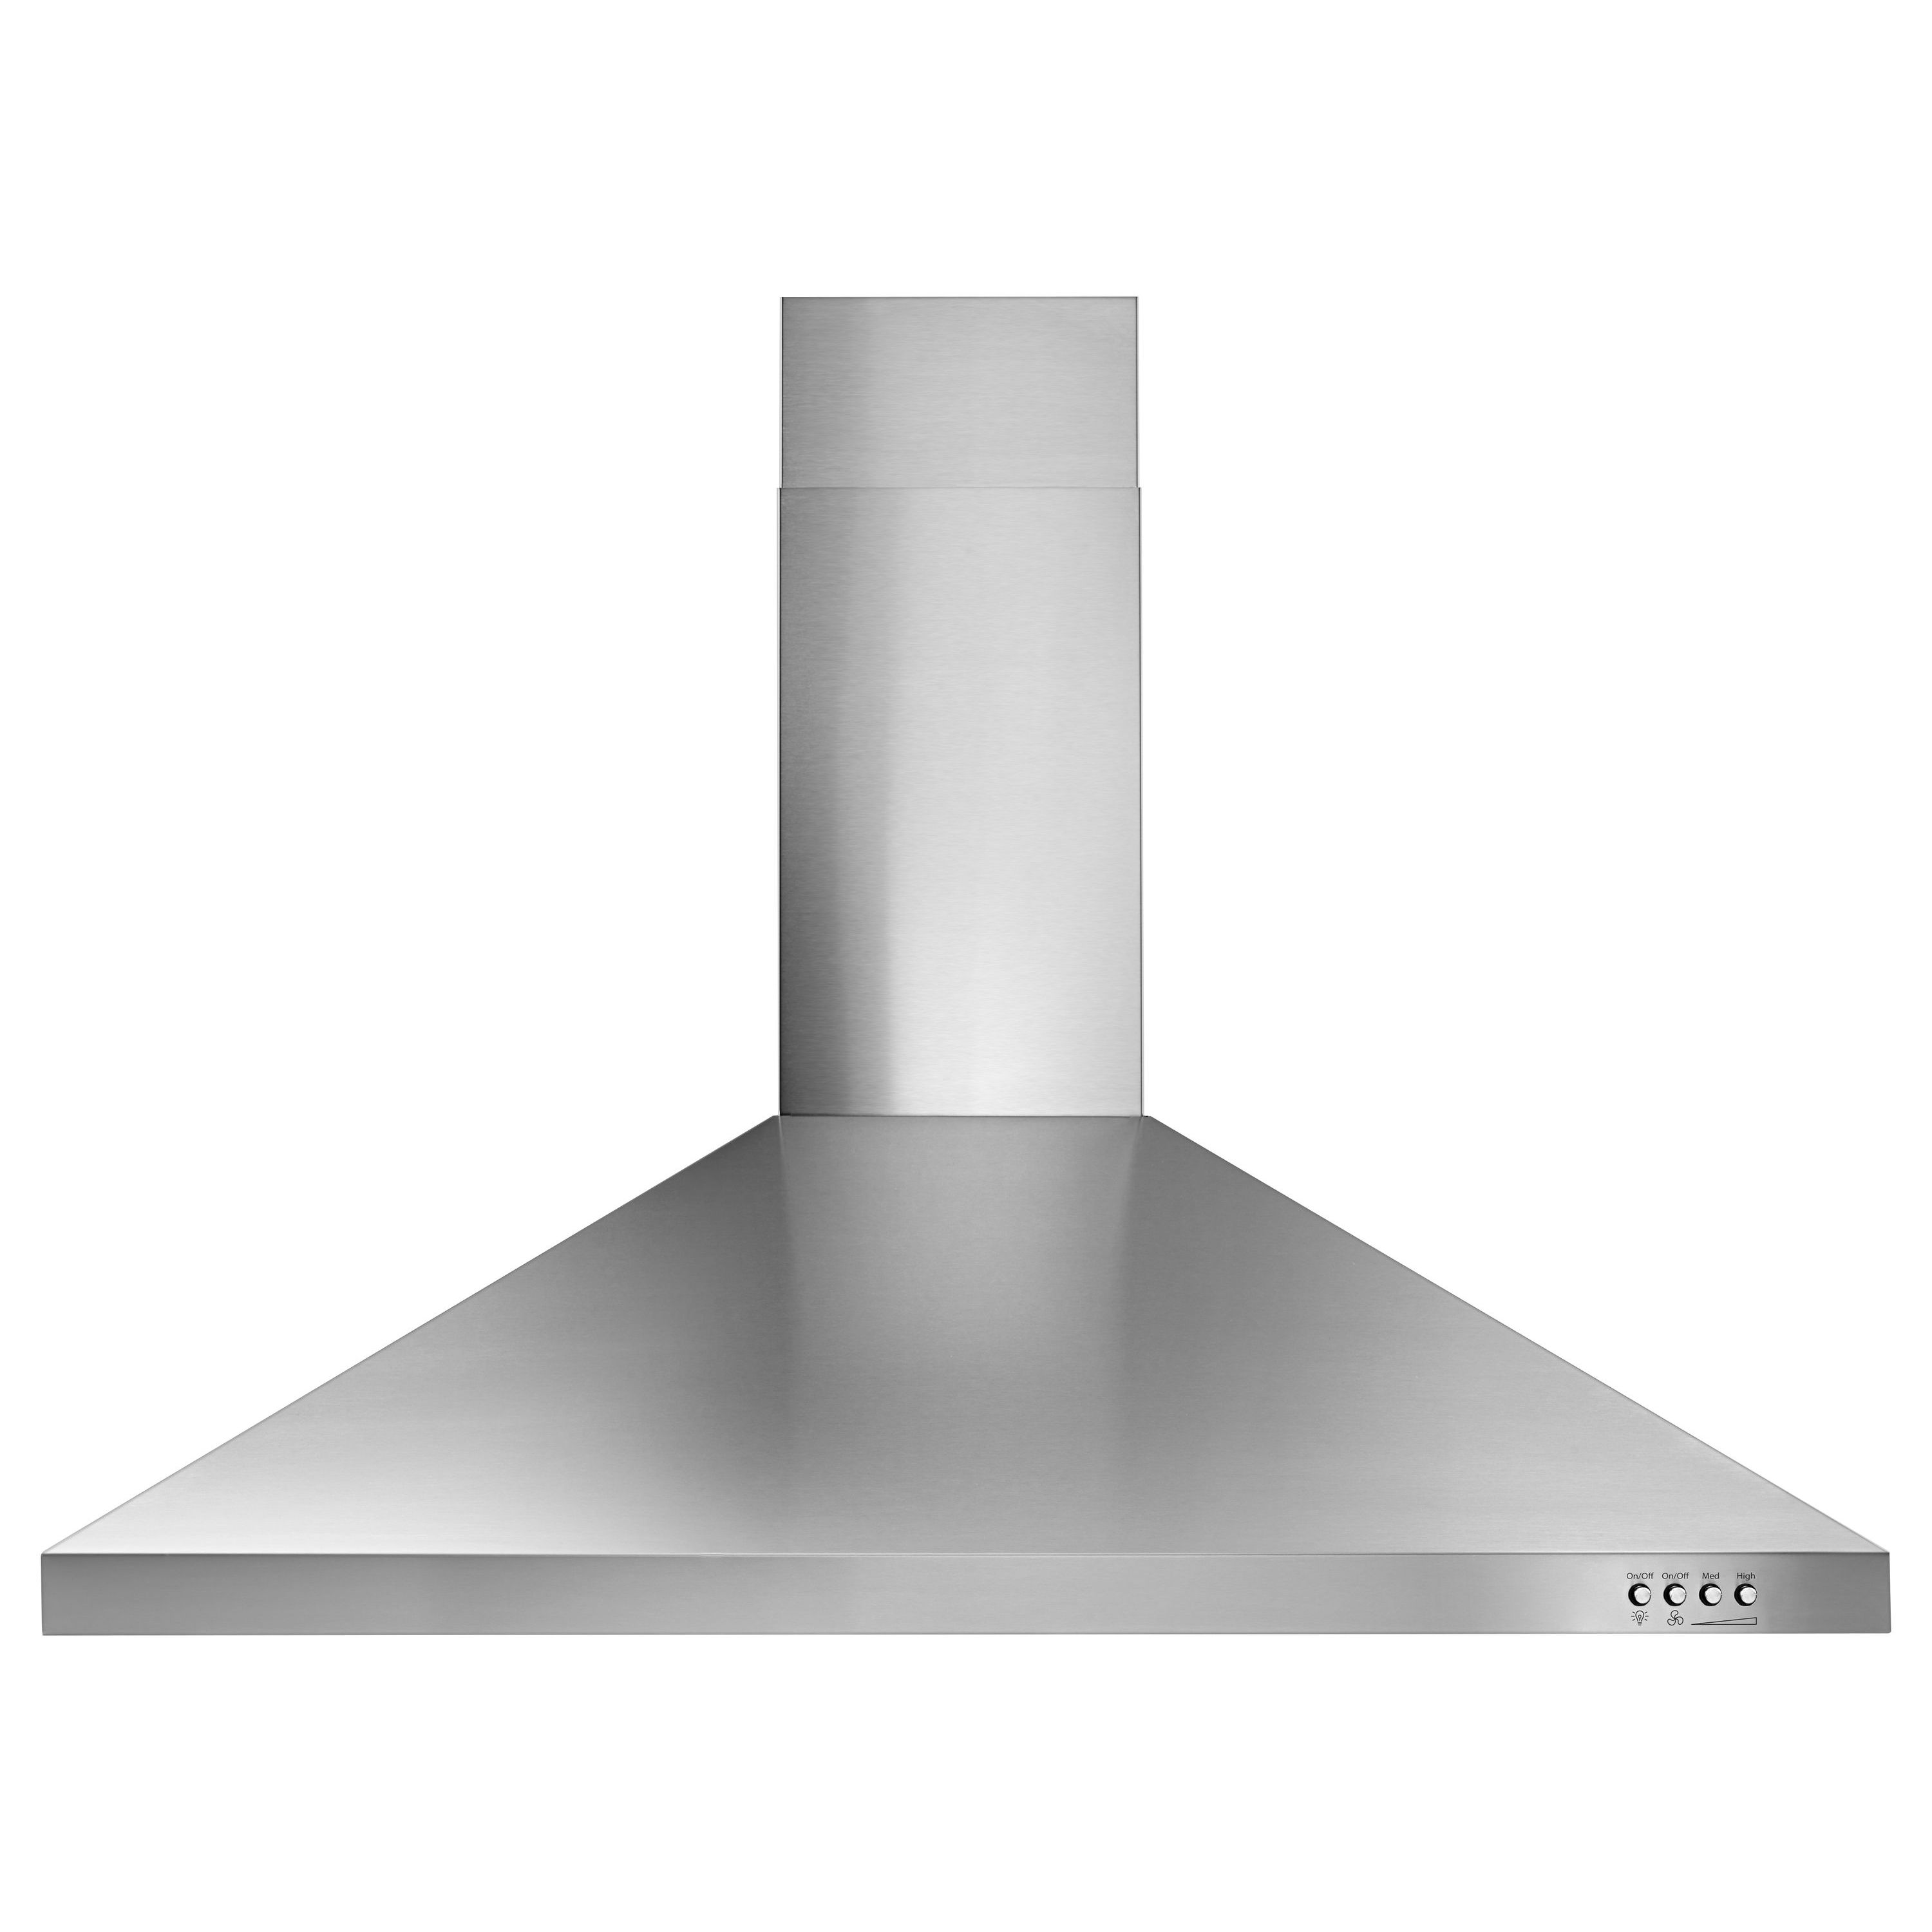 WVW53UC6FS-36-Contemporary-Wall-Mount-Range-Hood-%E2%80%93-Stainless-Steel